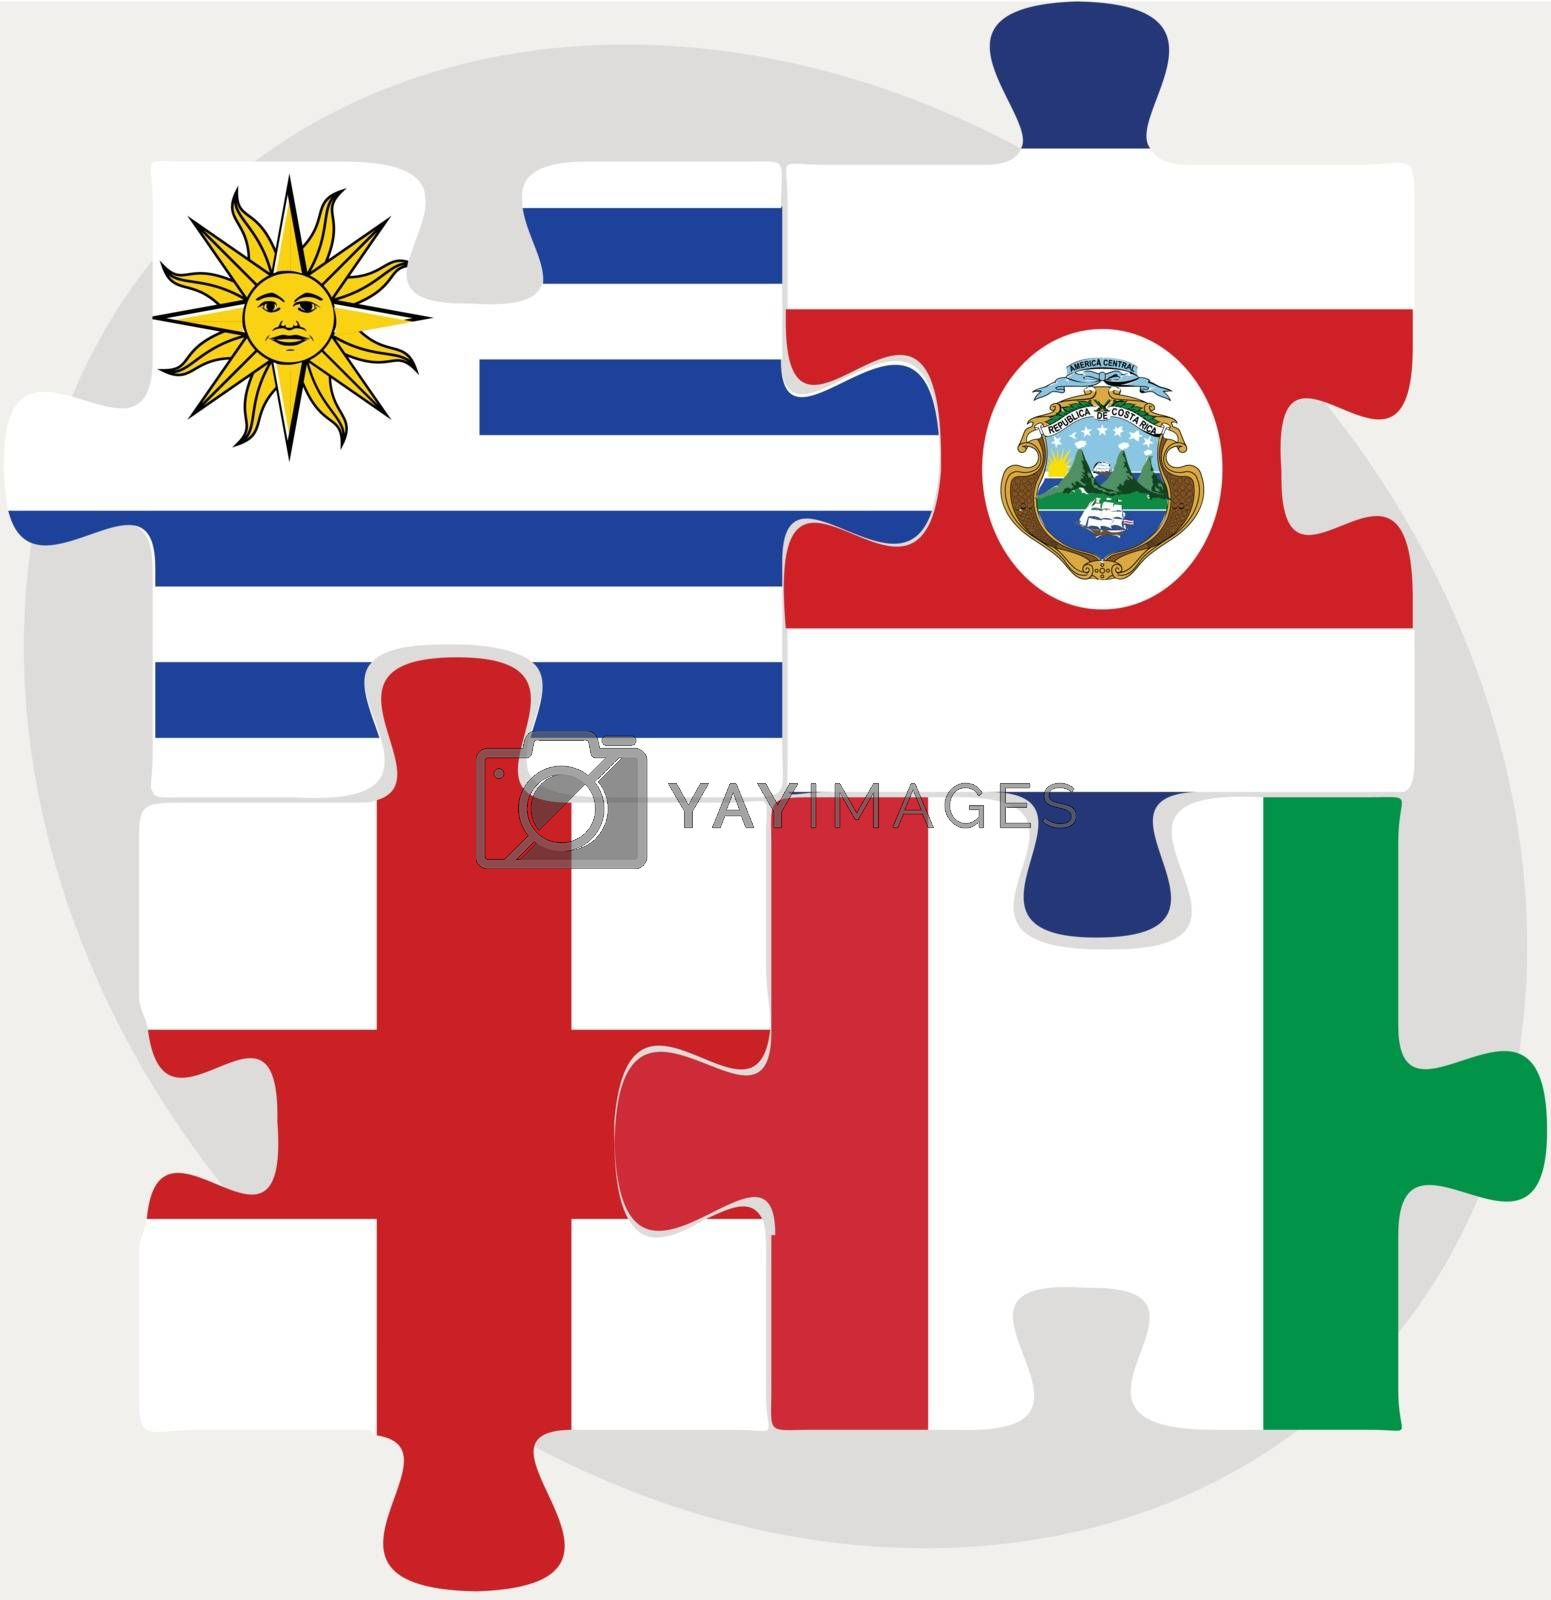 Uruguay, Costa Rica, England and Italy Flags in puzzle by Istanbul2009